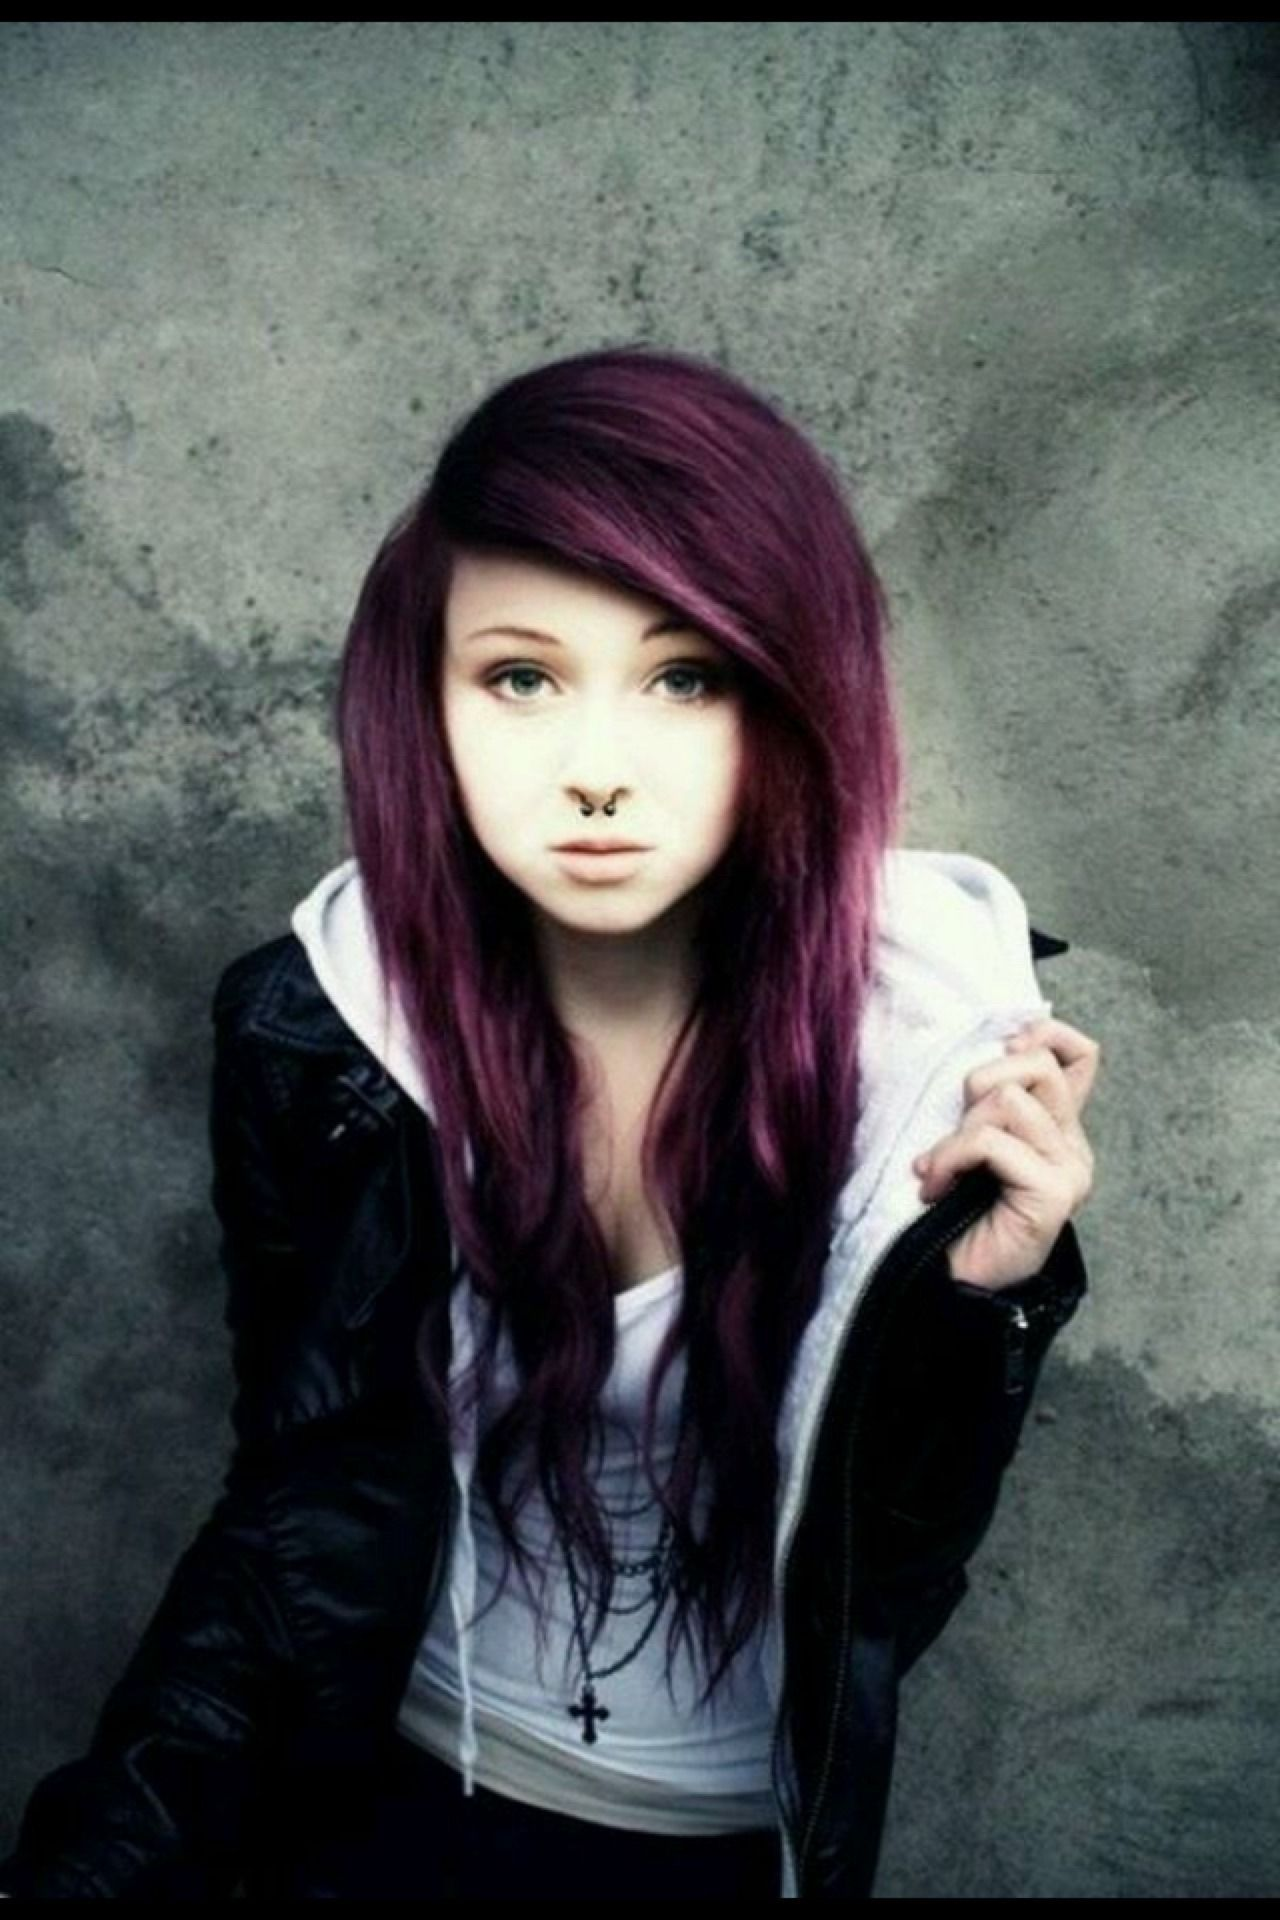 Emo Hairstyles Inspiration 15 Cute Emo Hairstyles For Girls 2018  Pinterest  Emo Hairstyles